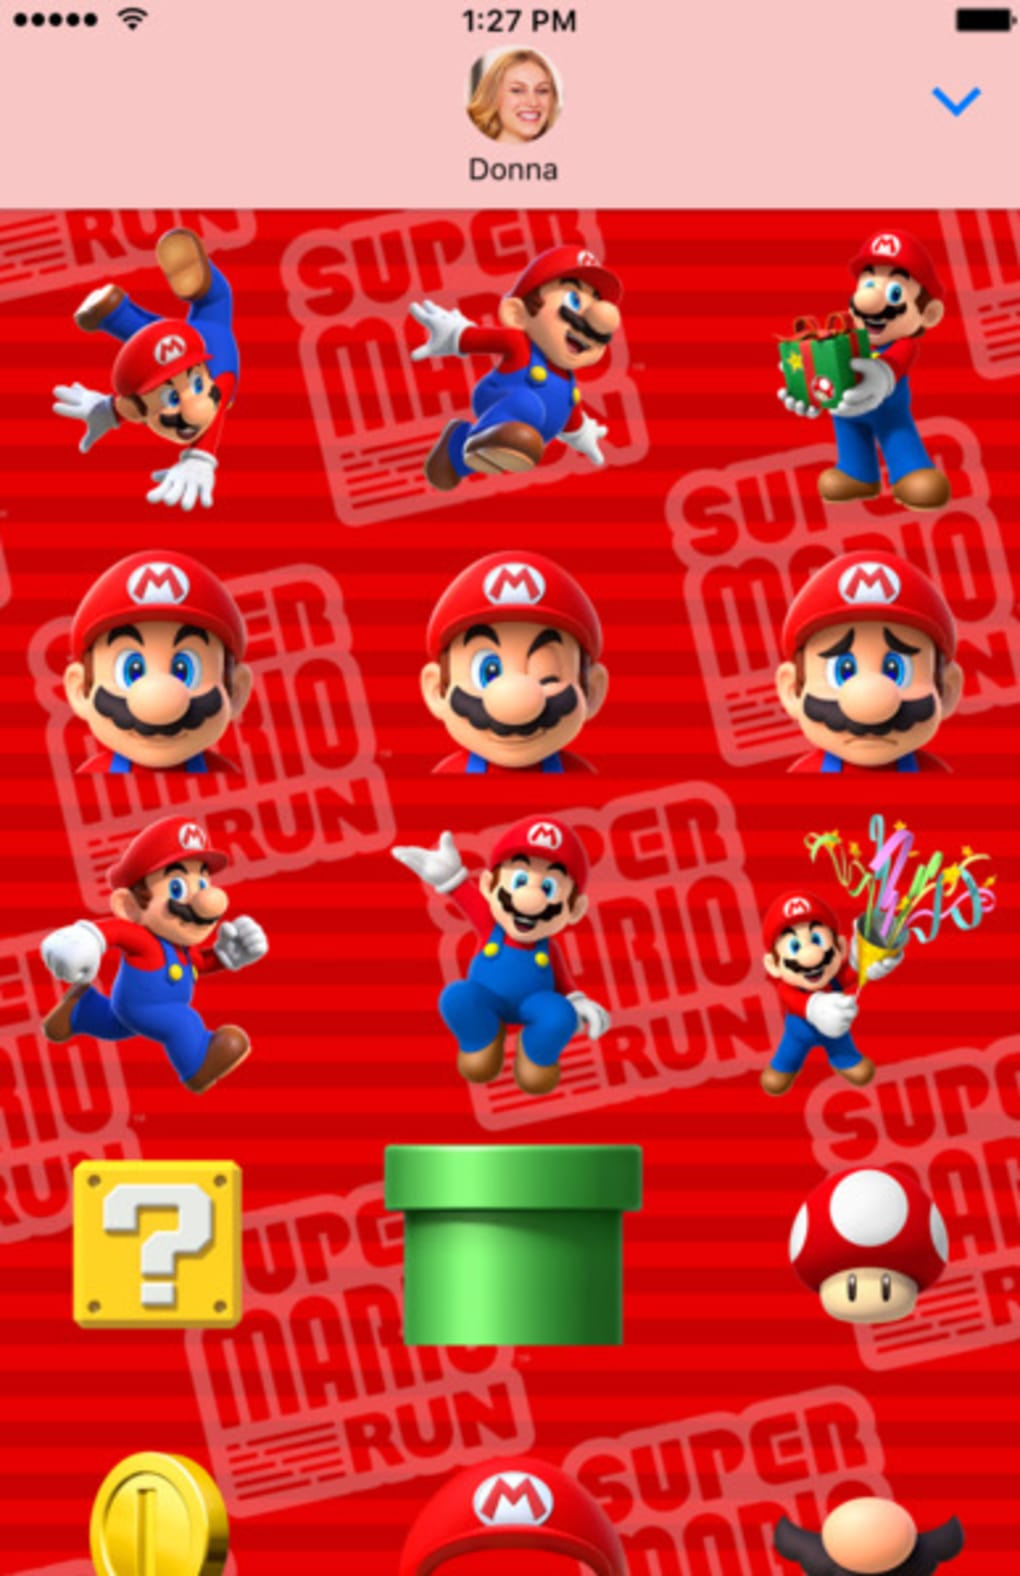 SUPER MARIO RUN Stickers for iPhone - Download